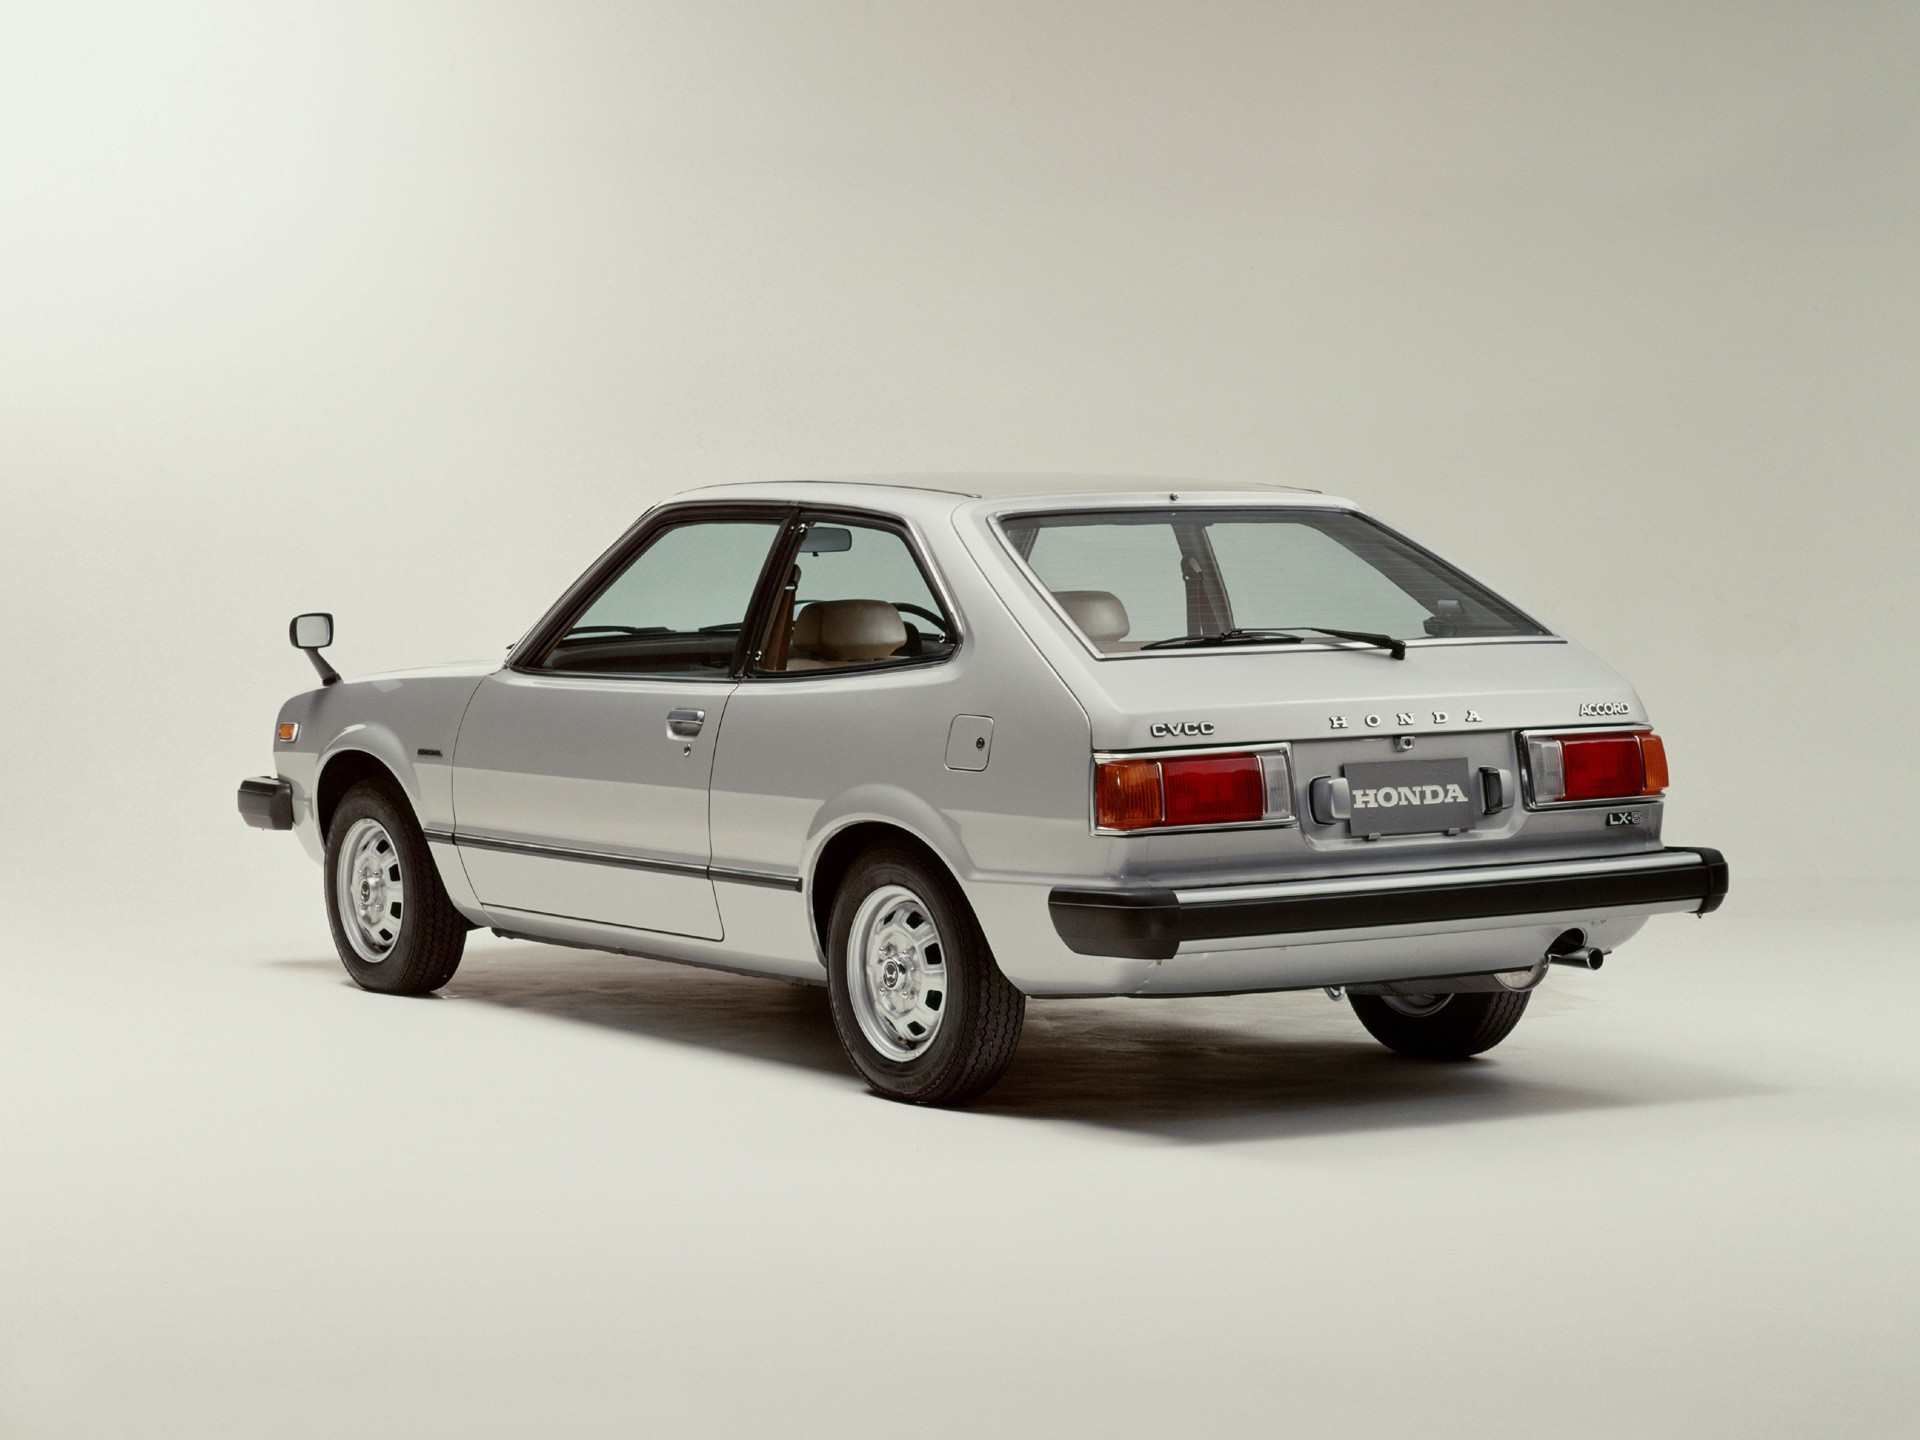 HONDA Accord 3 Doors specs - 1976, 1977, 1978, 1979, 1980 ...